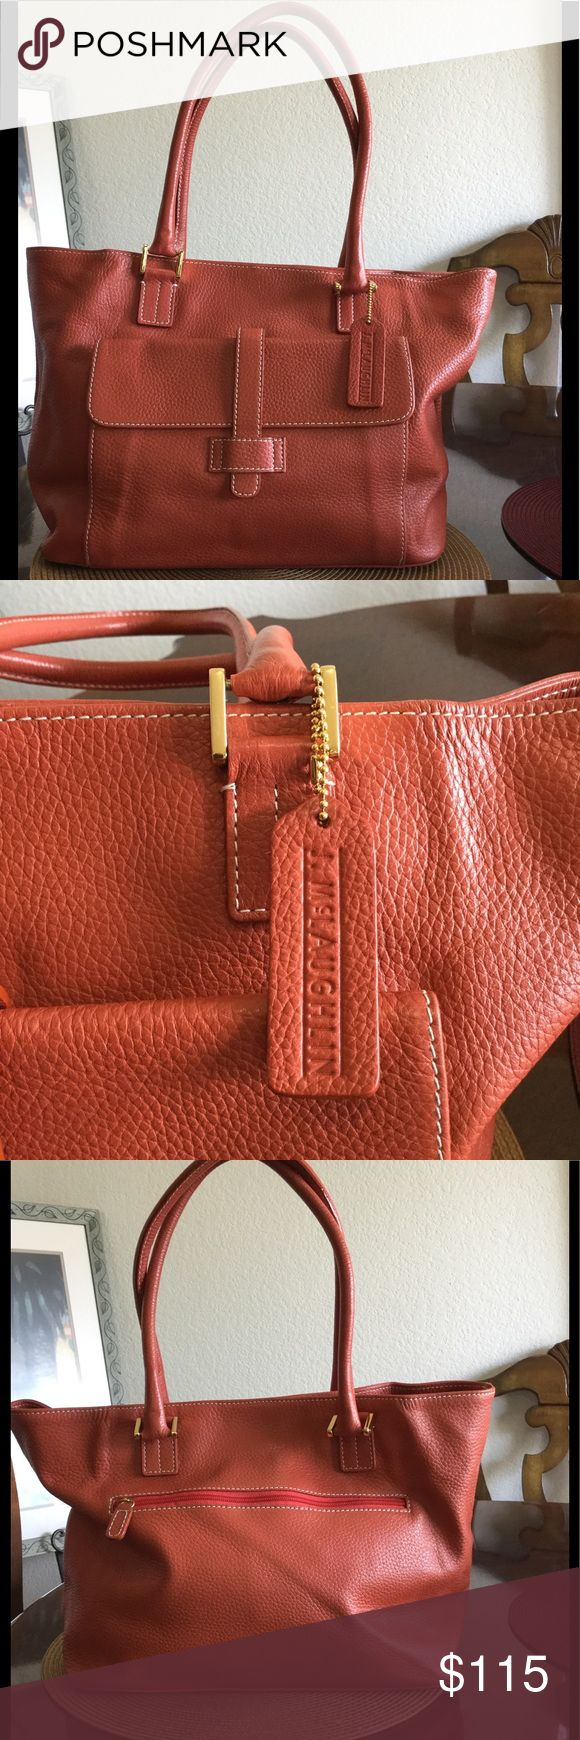 "J. McLAUGHLIN Orange Leather Tote Gorgeous, gorgeous orange leather tote by J. McLAUGHLIN. Double strap drop 10"" with gold hardware, magnetic closure with zipper pocket in the back and large flap pocket in the front. Pebble leather is so soft! Inside has one zipper pocket and two slot pockets. Four feet on the bottom, in great shape. Tuck the corner for a whole new look! Please see photos with interior stains and outside blemish. Perfect roomy bag for all of your essentials! J. McLaughlin…"